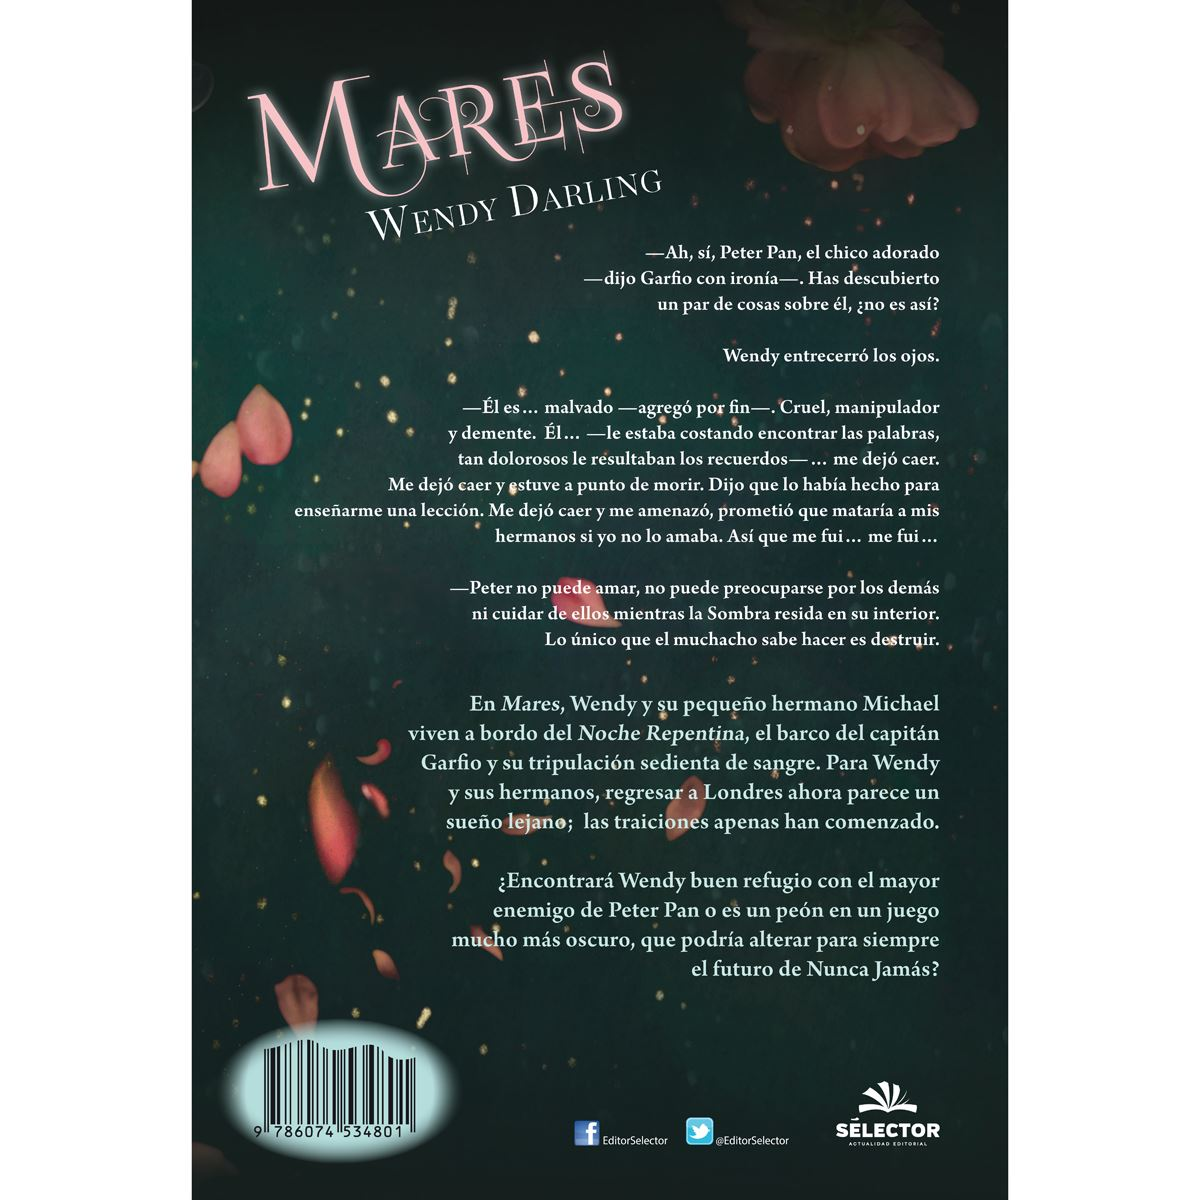 Mares. wendy darling Libro - Sanborns